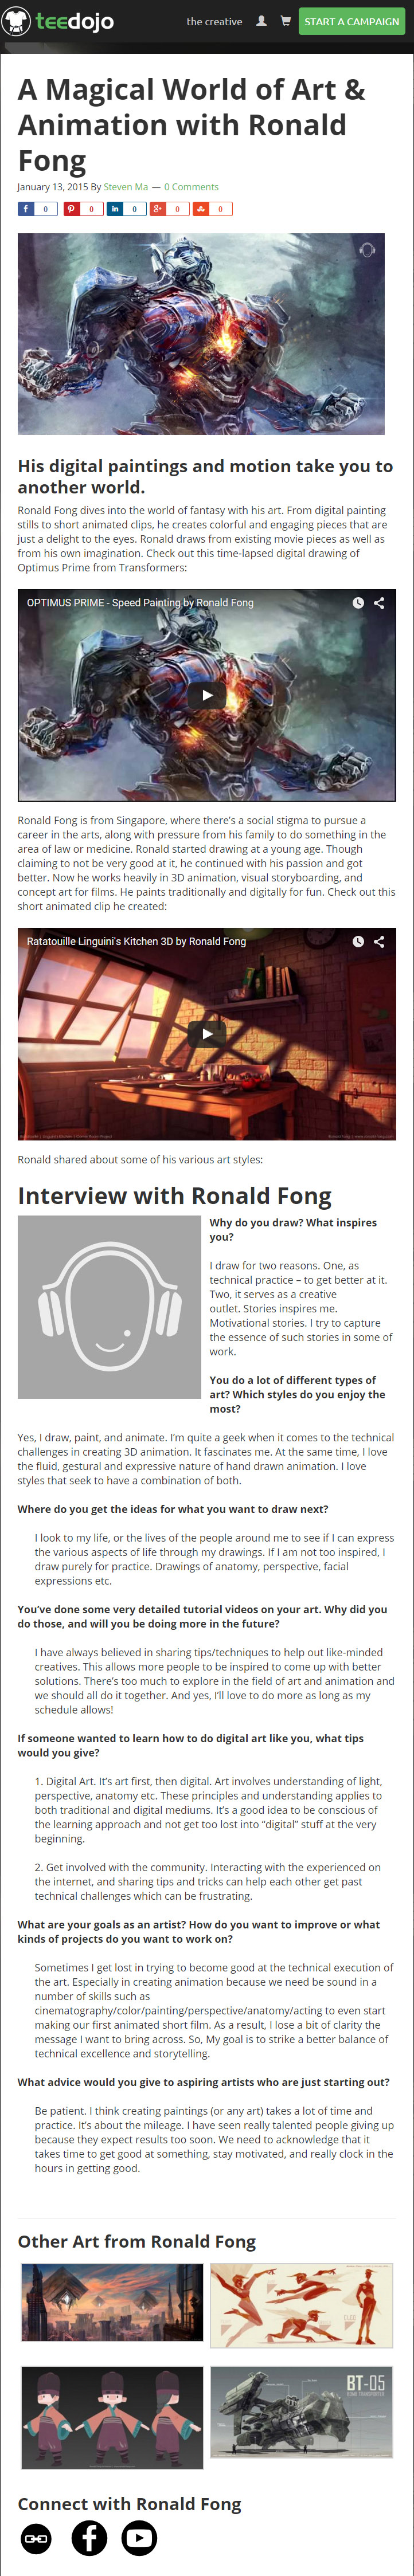 Ronald Fong Animation Singapore Featured on TeeDojo